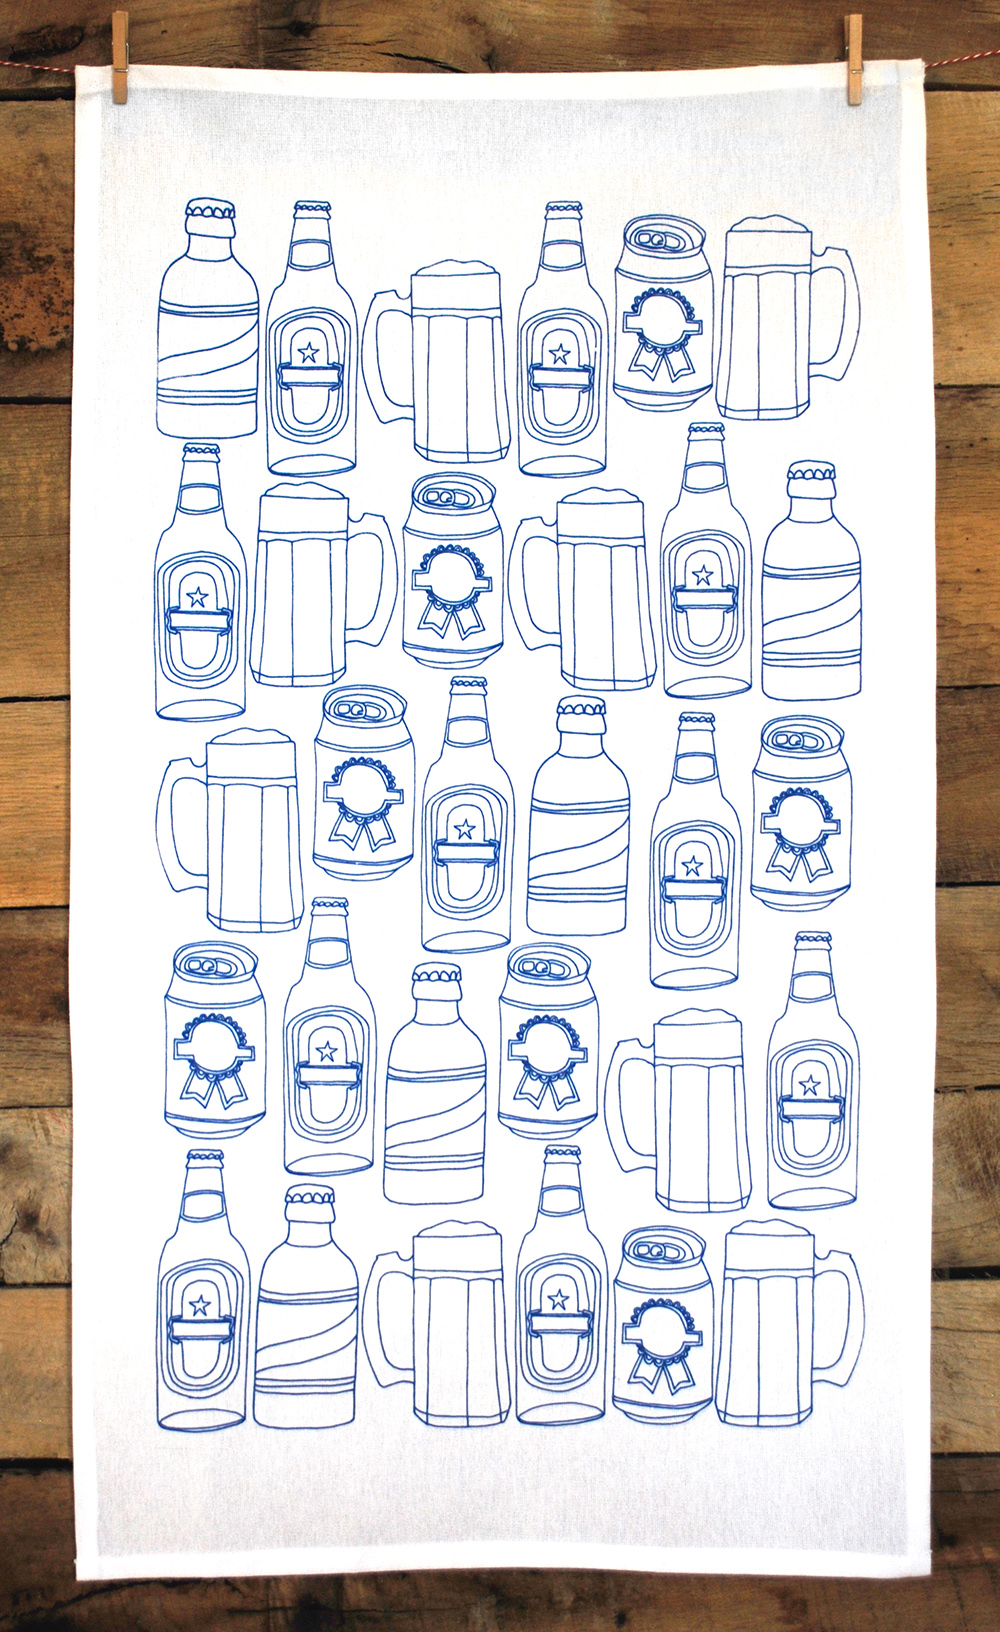 Screen printed tea towel featuring a hand-drawn beer pattern.